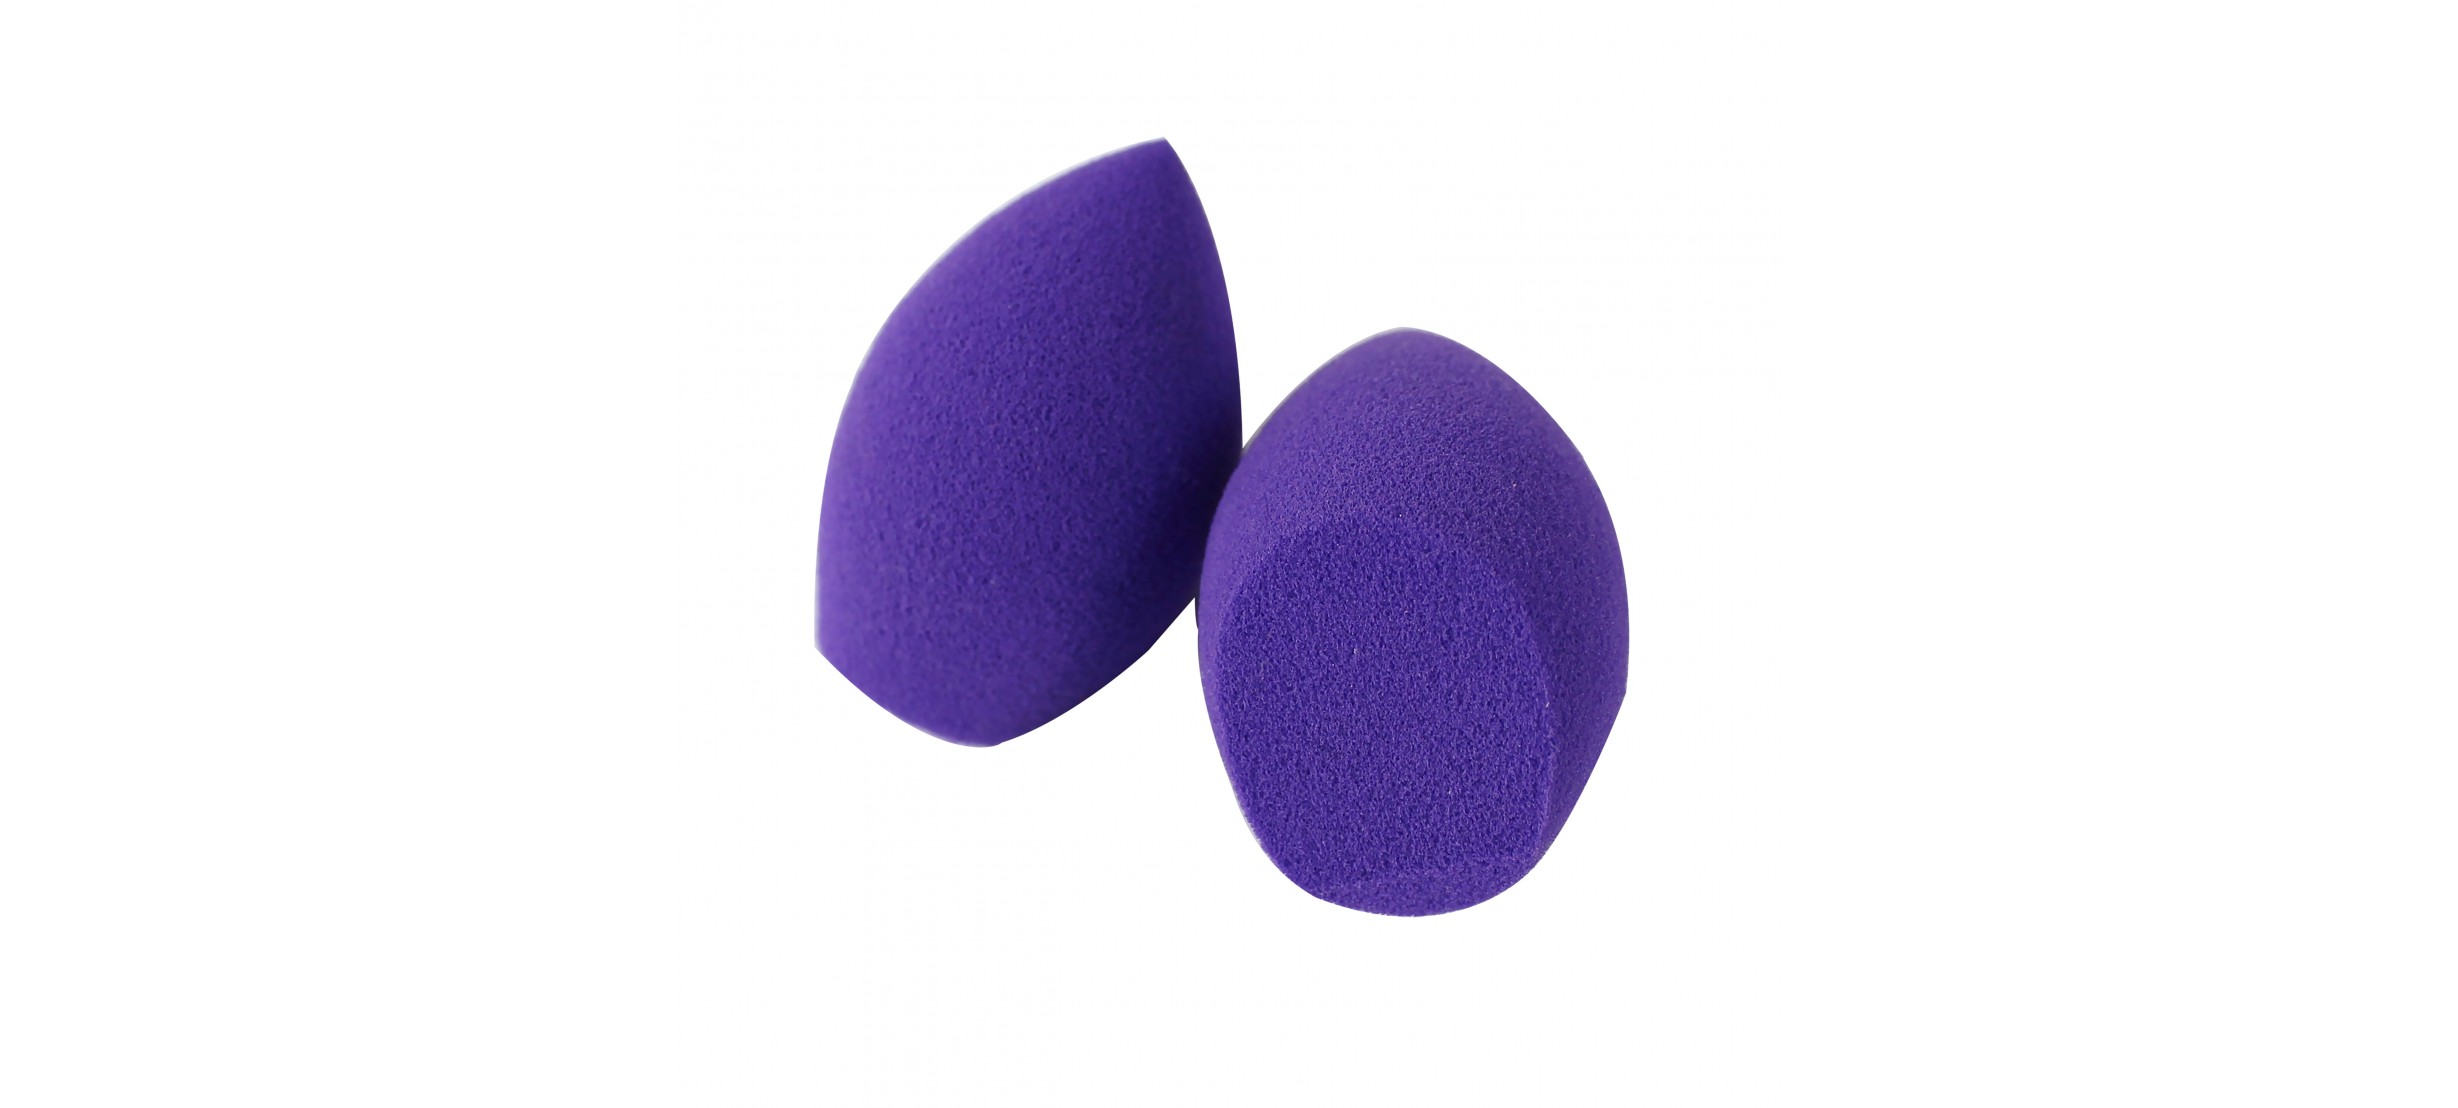 2 MIRACLE MINI ERASER SPONGES - ORNAMENT